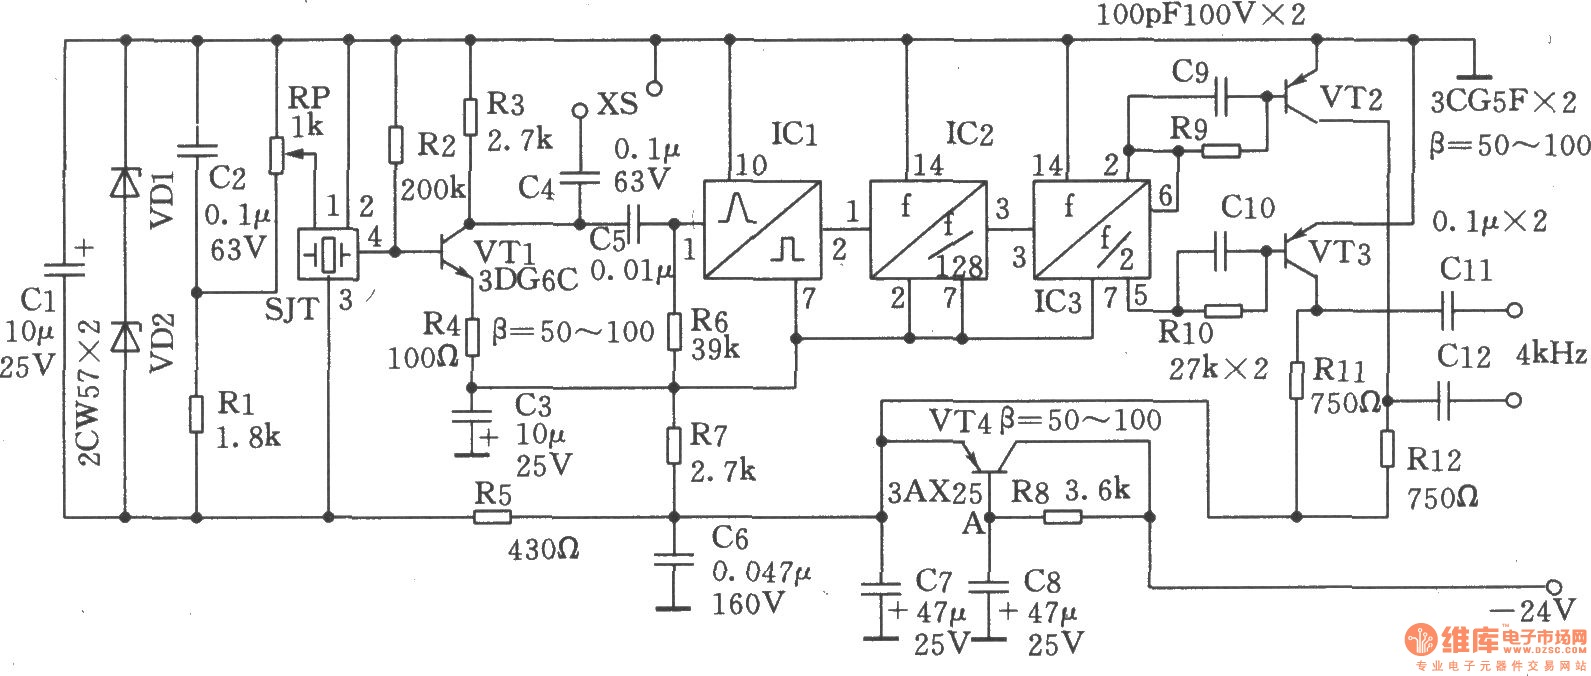 Results Page 54 About Transistor Smd Searching Circuits At Clock Circuit 5 Meter Counter Nextgr 1024khz And 4khz Square Wave Output